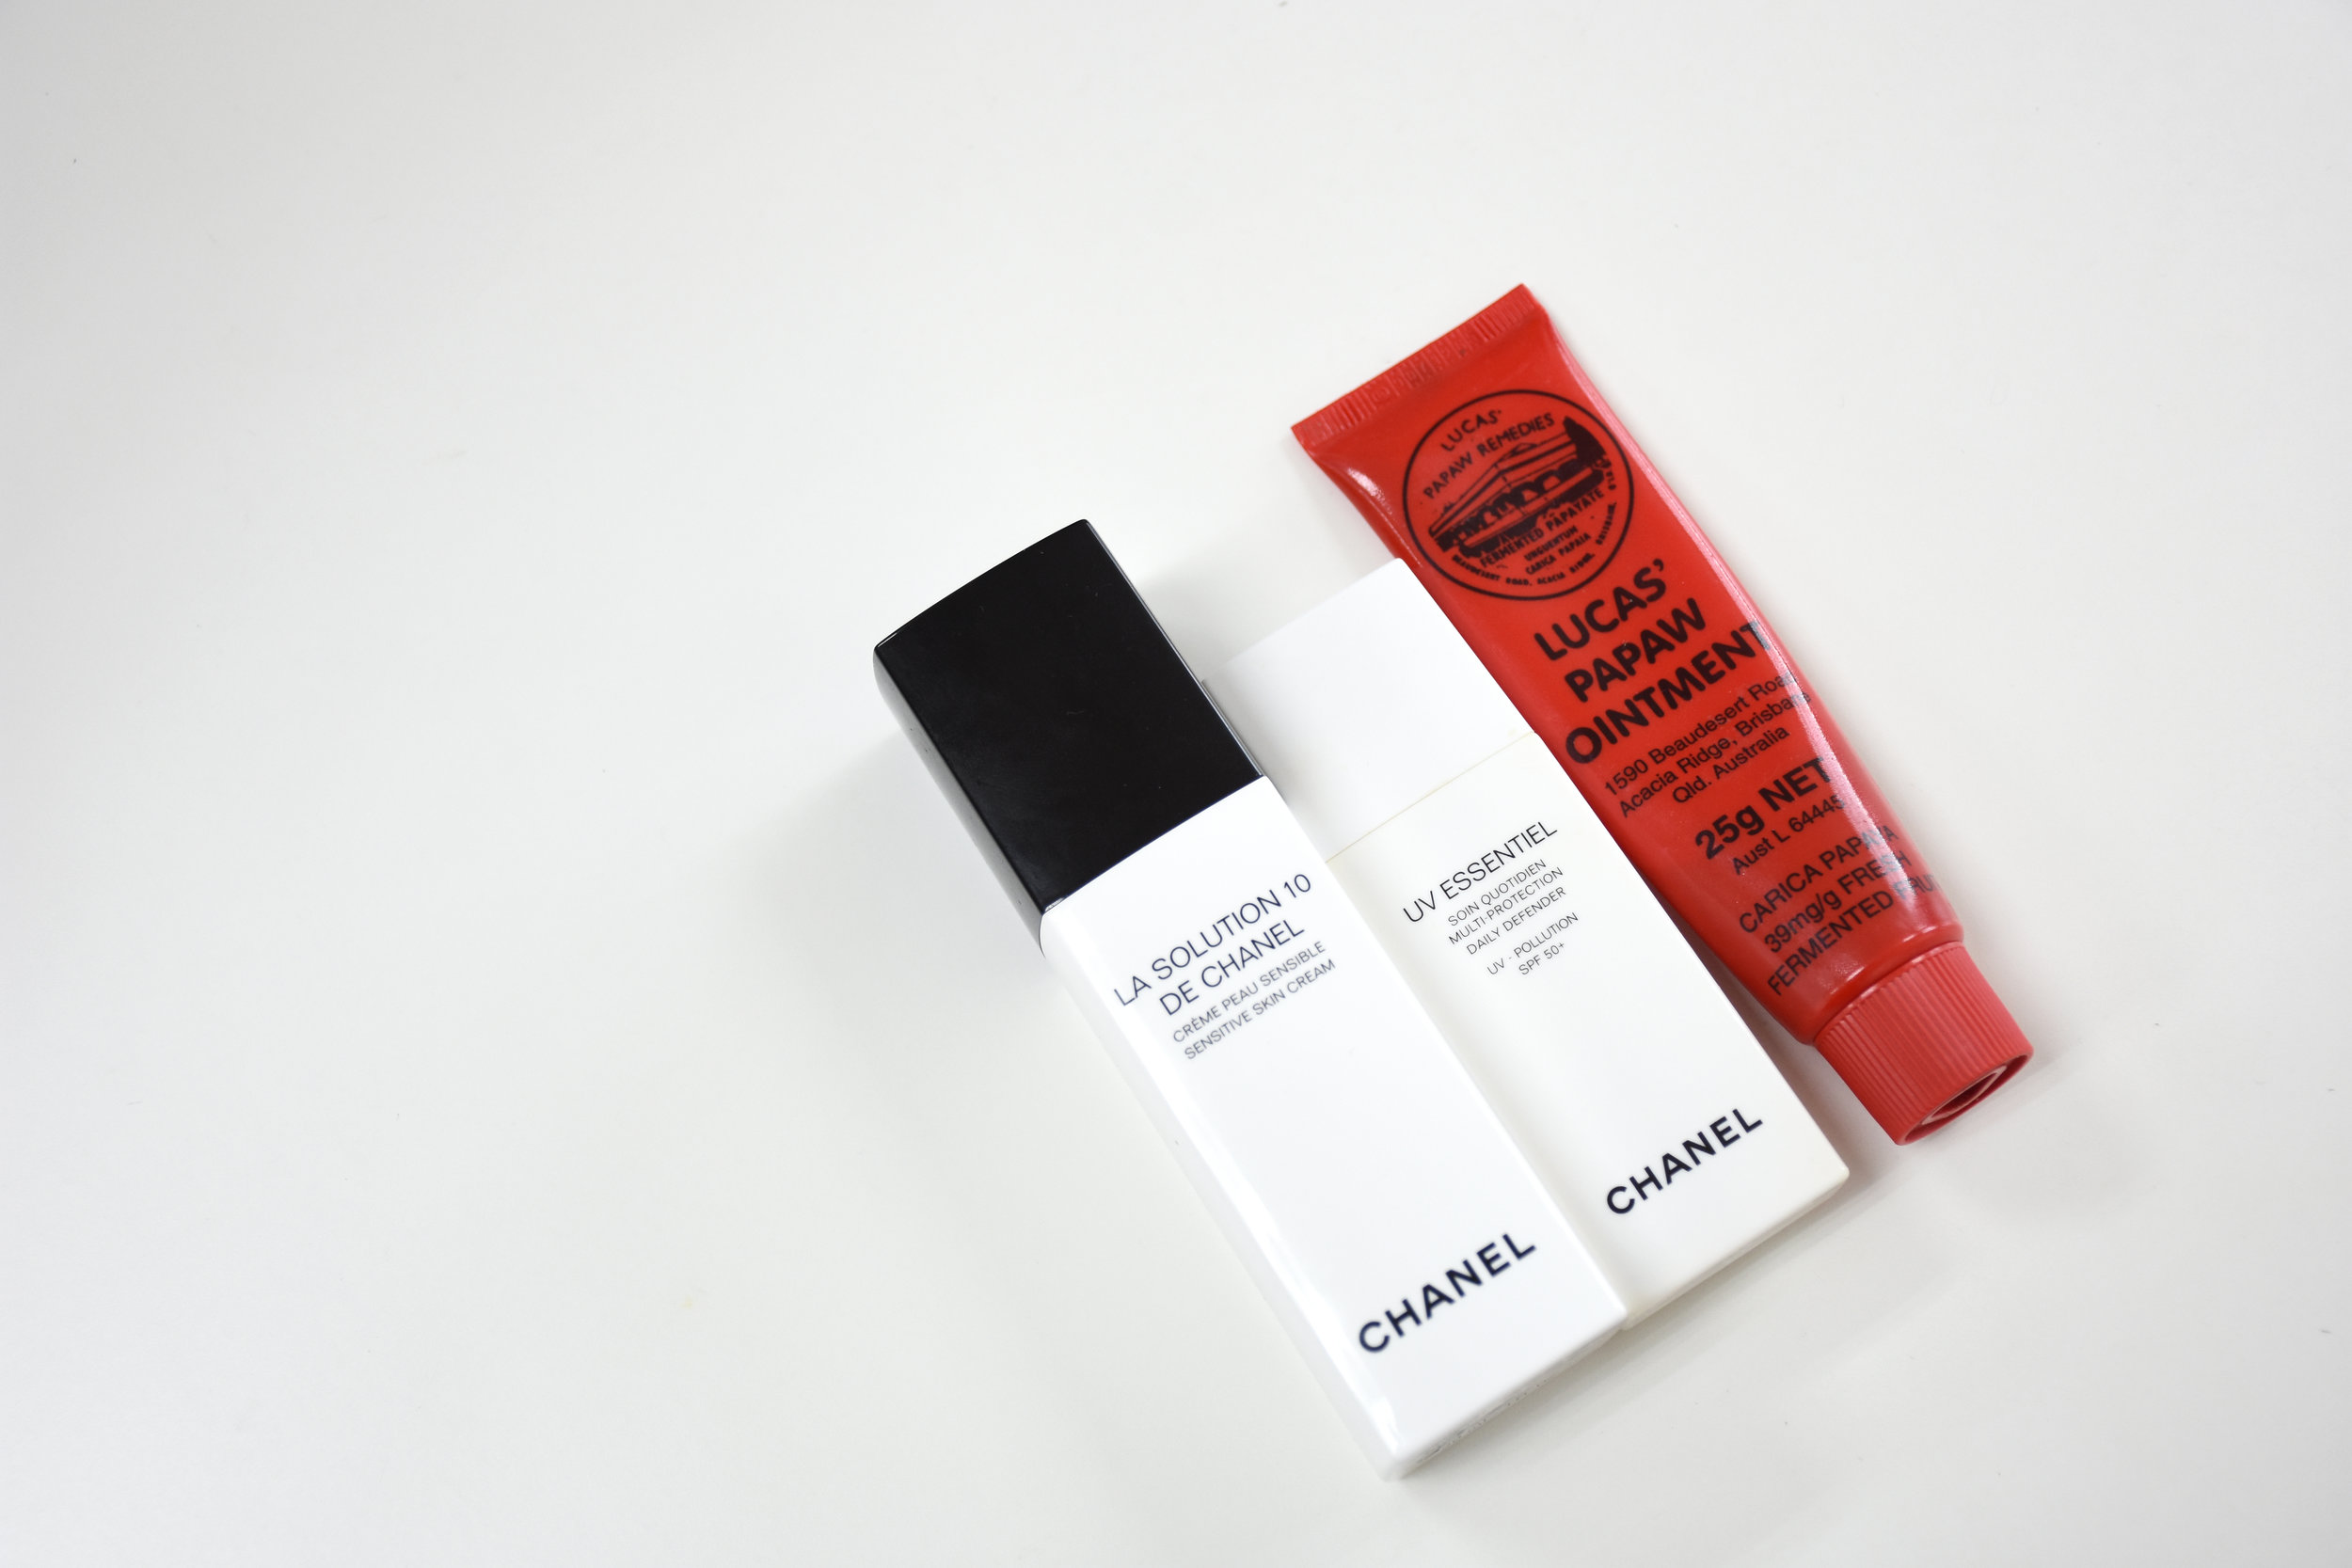 chanel cream and lucas papaw ointment